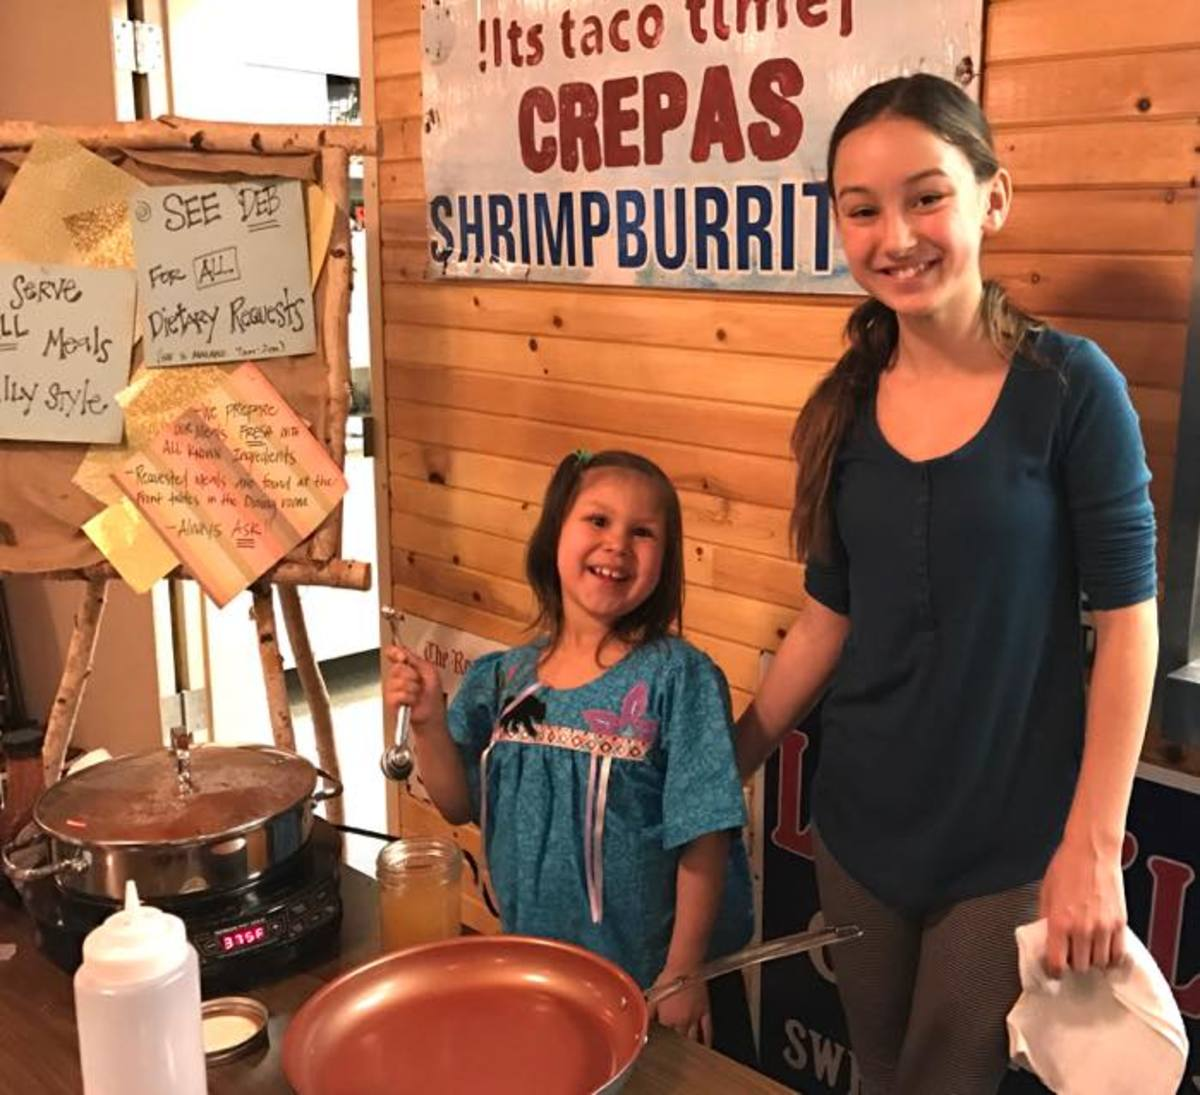 Maizie White hosts an interactive youth cooking demonstration. They made healthy indigenous snacks such as maple toasted pumpkin seeds, pan roasted sweet potatoes and wild rice bowls. Teaching Native American youth about food sovereignty is important.